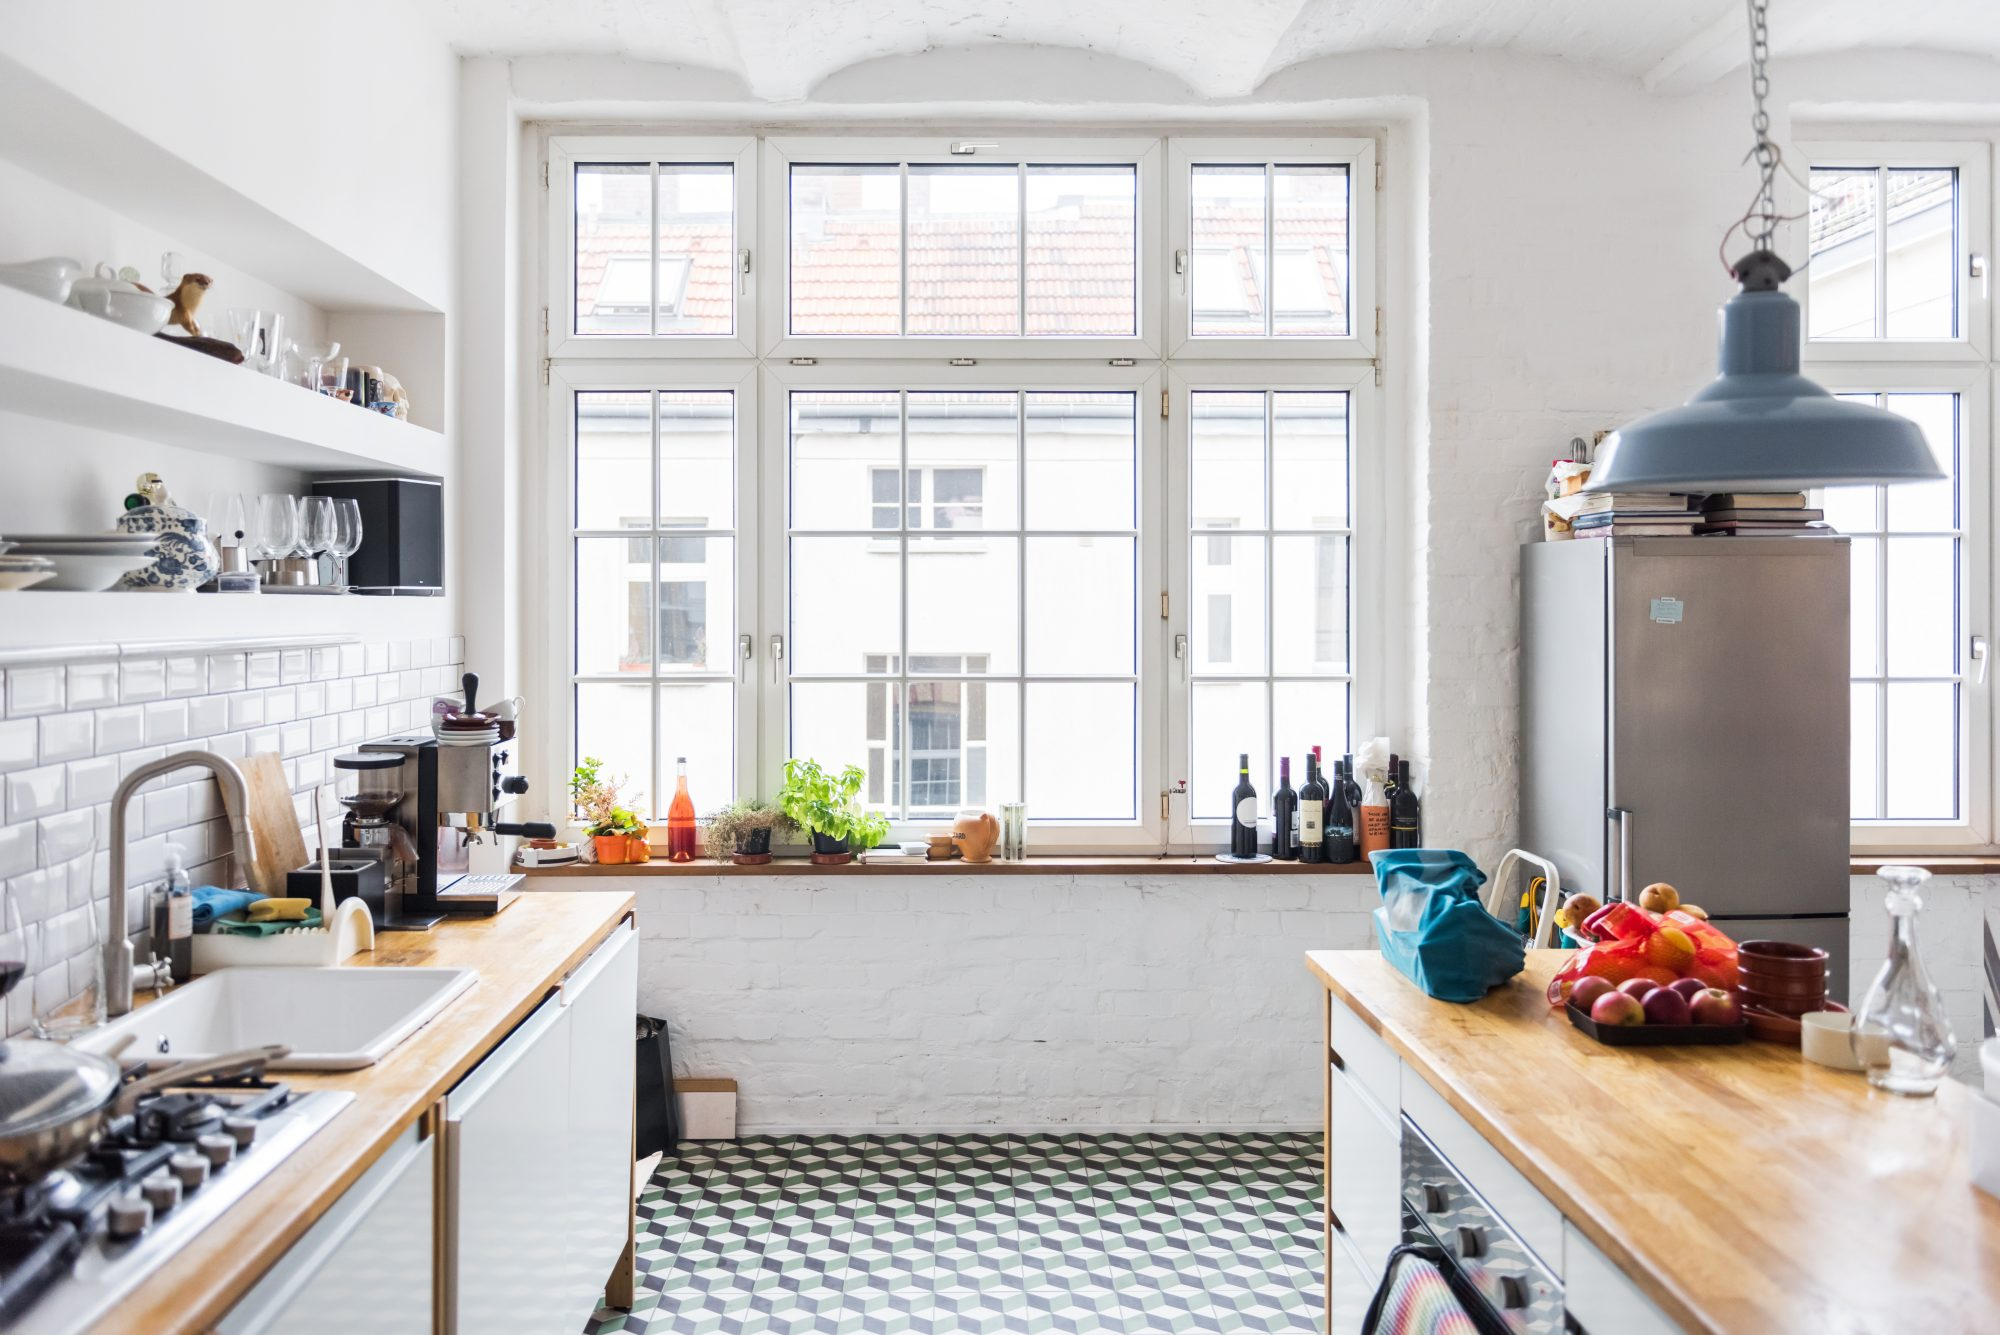 6 Natural Ways To Repel Bugs in Your Kitchen